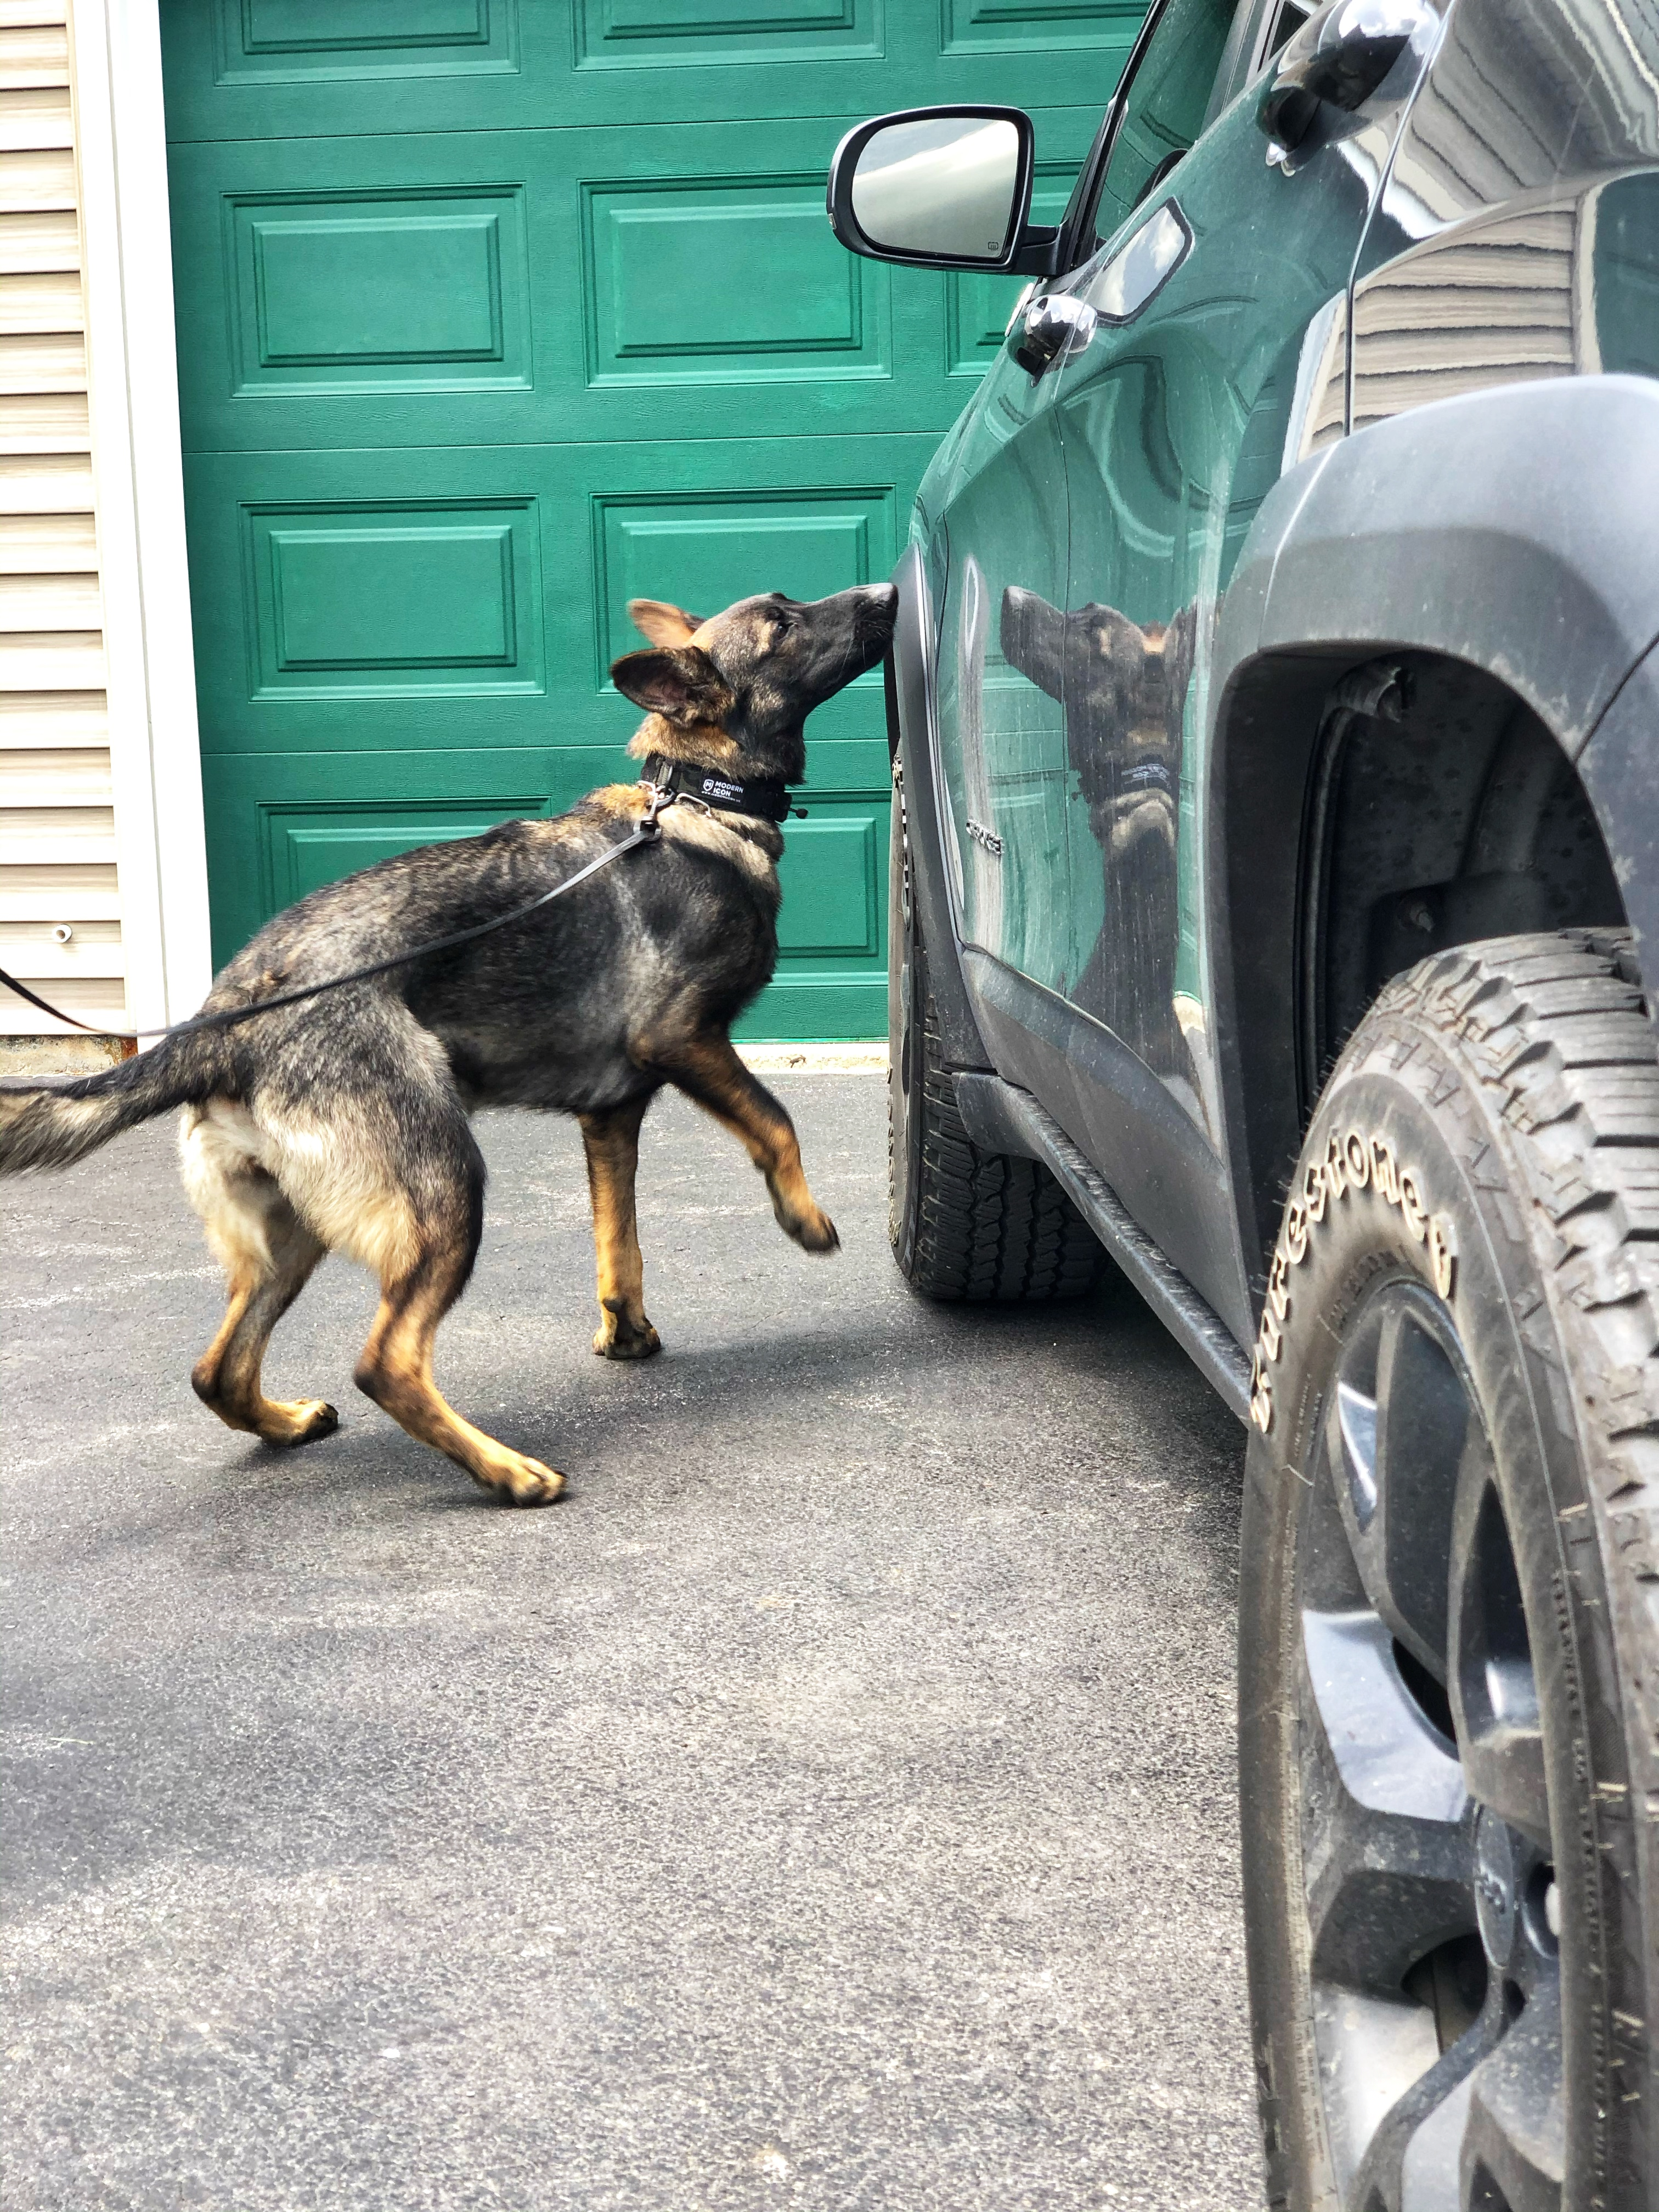 K9 Yara searching a vehicle for drugs.